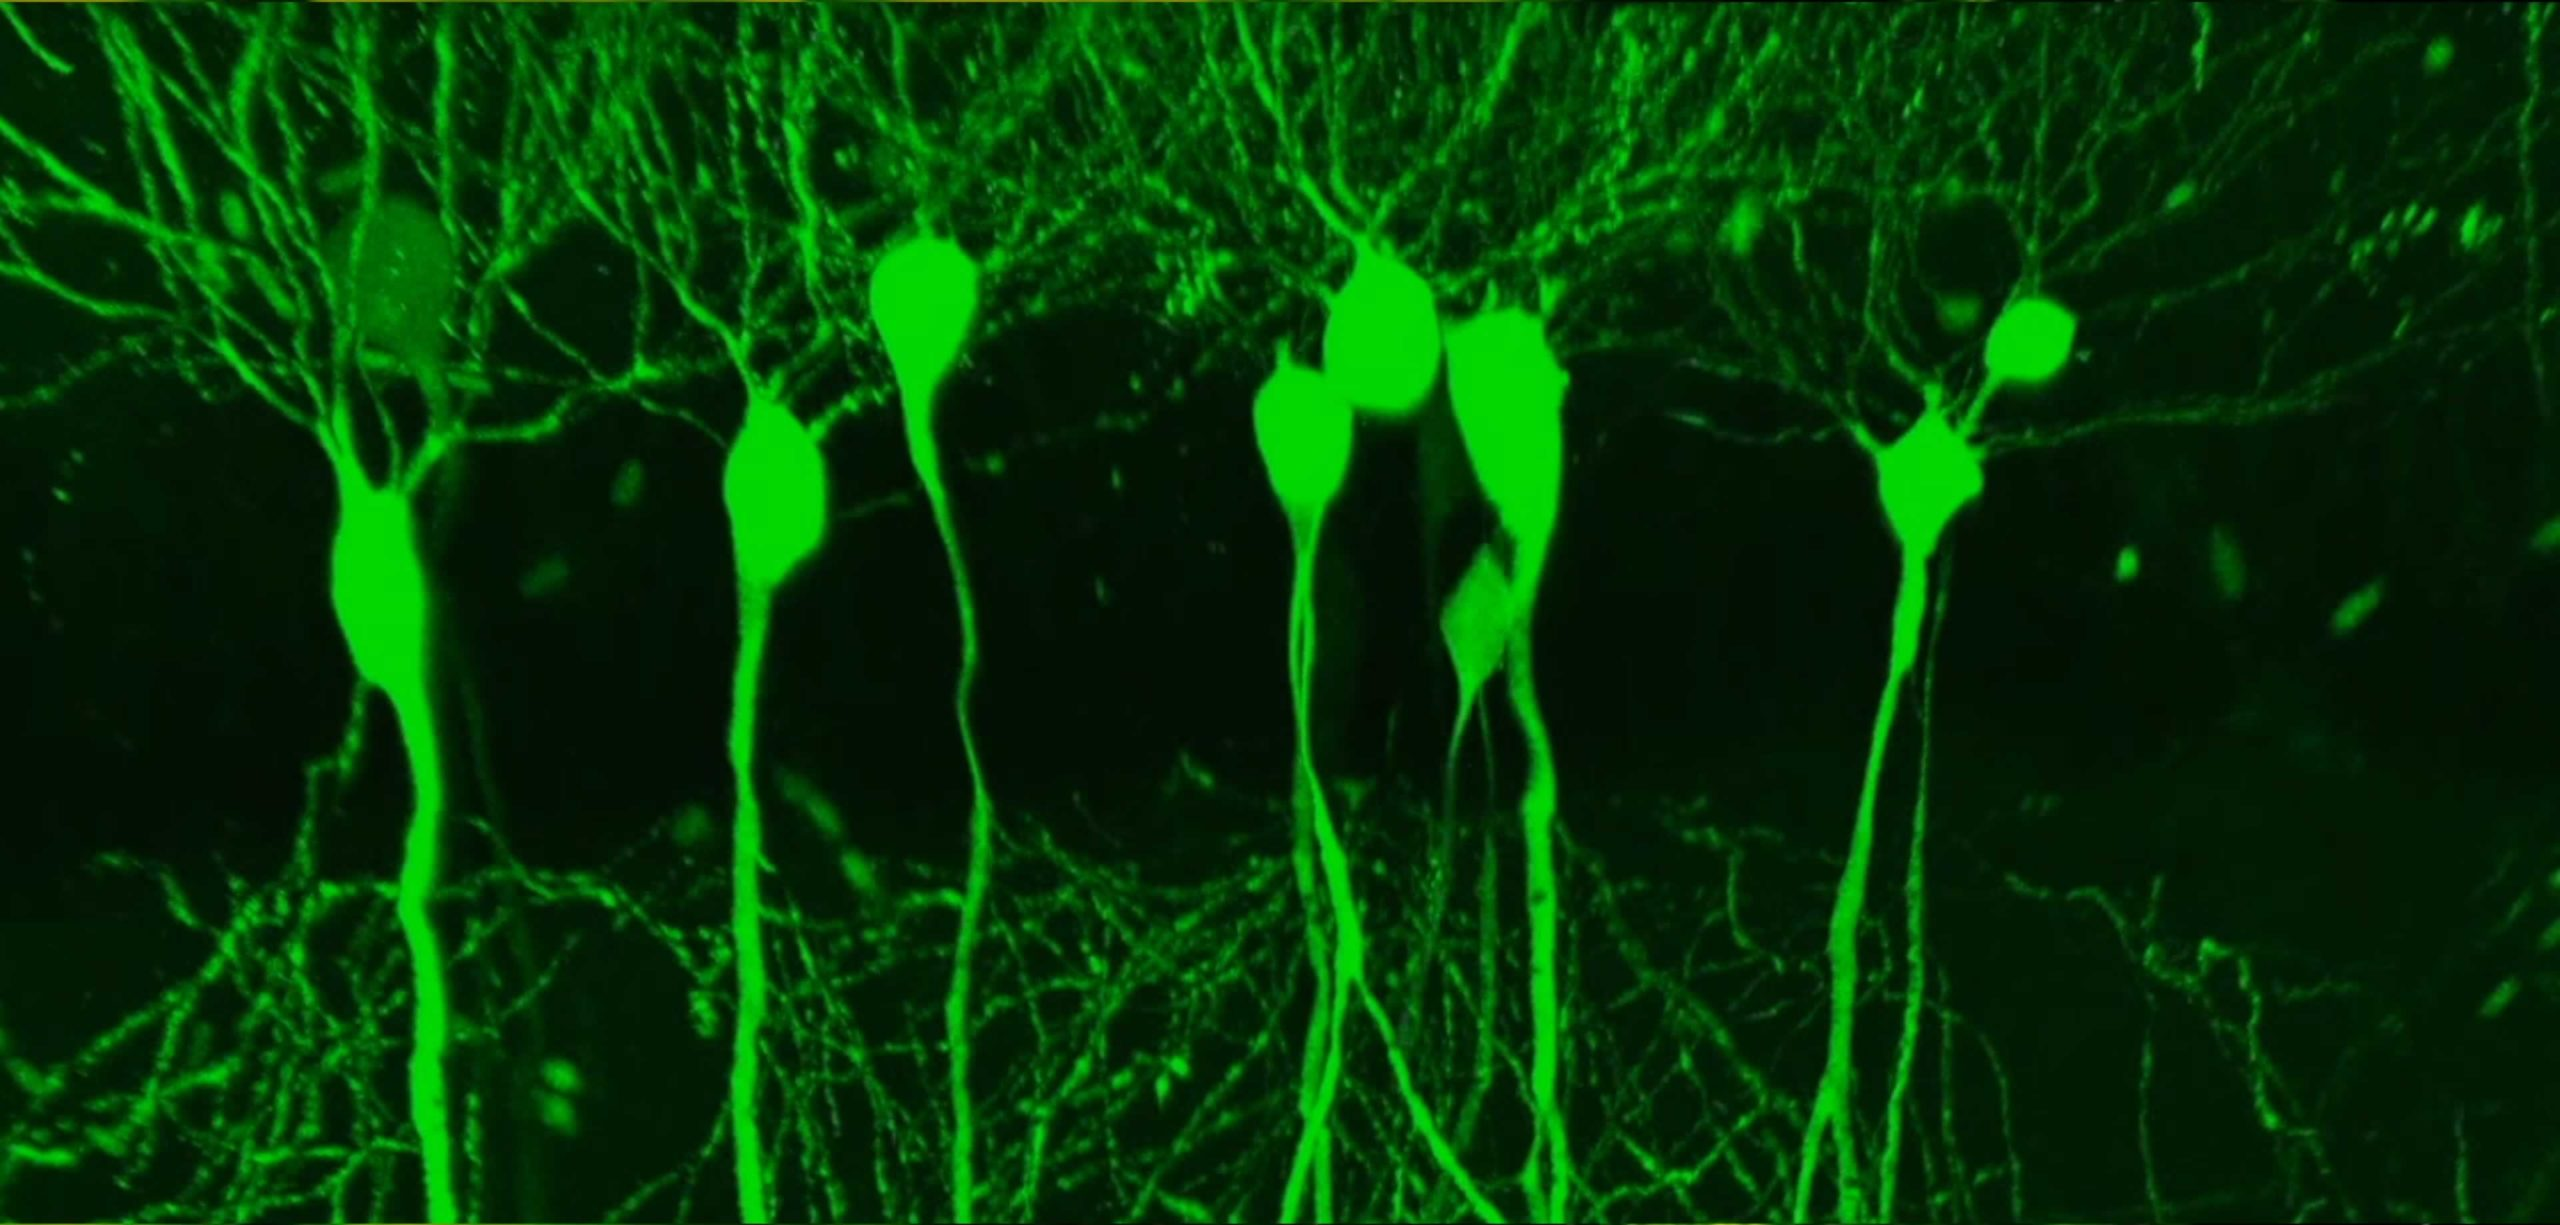 Subcellular Brain Tissue Imaging - Single Neurons